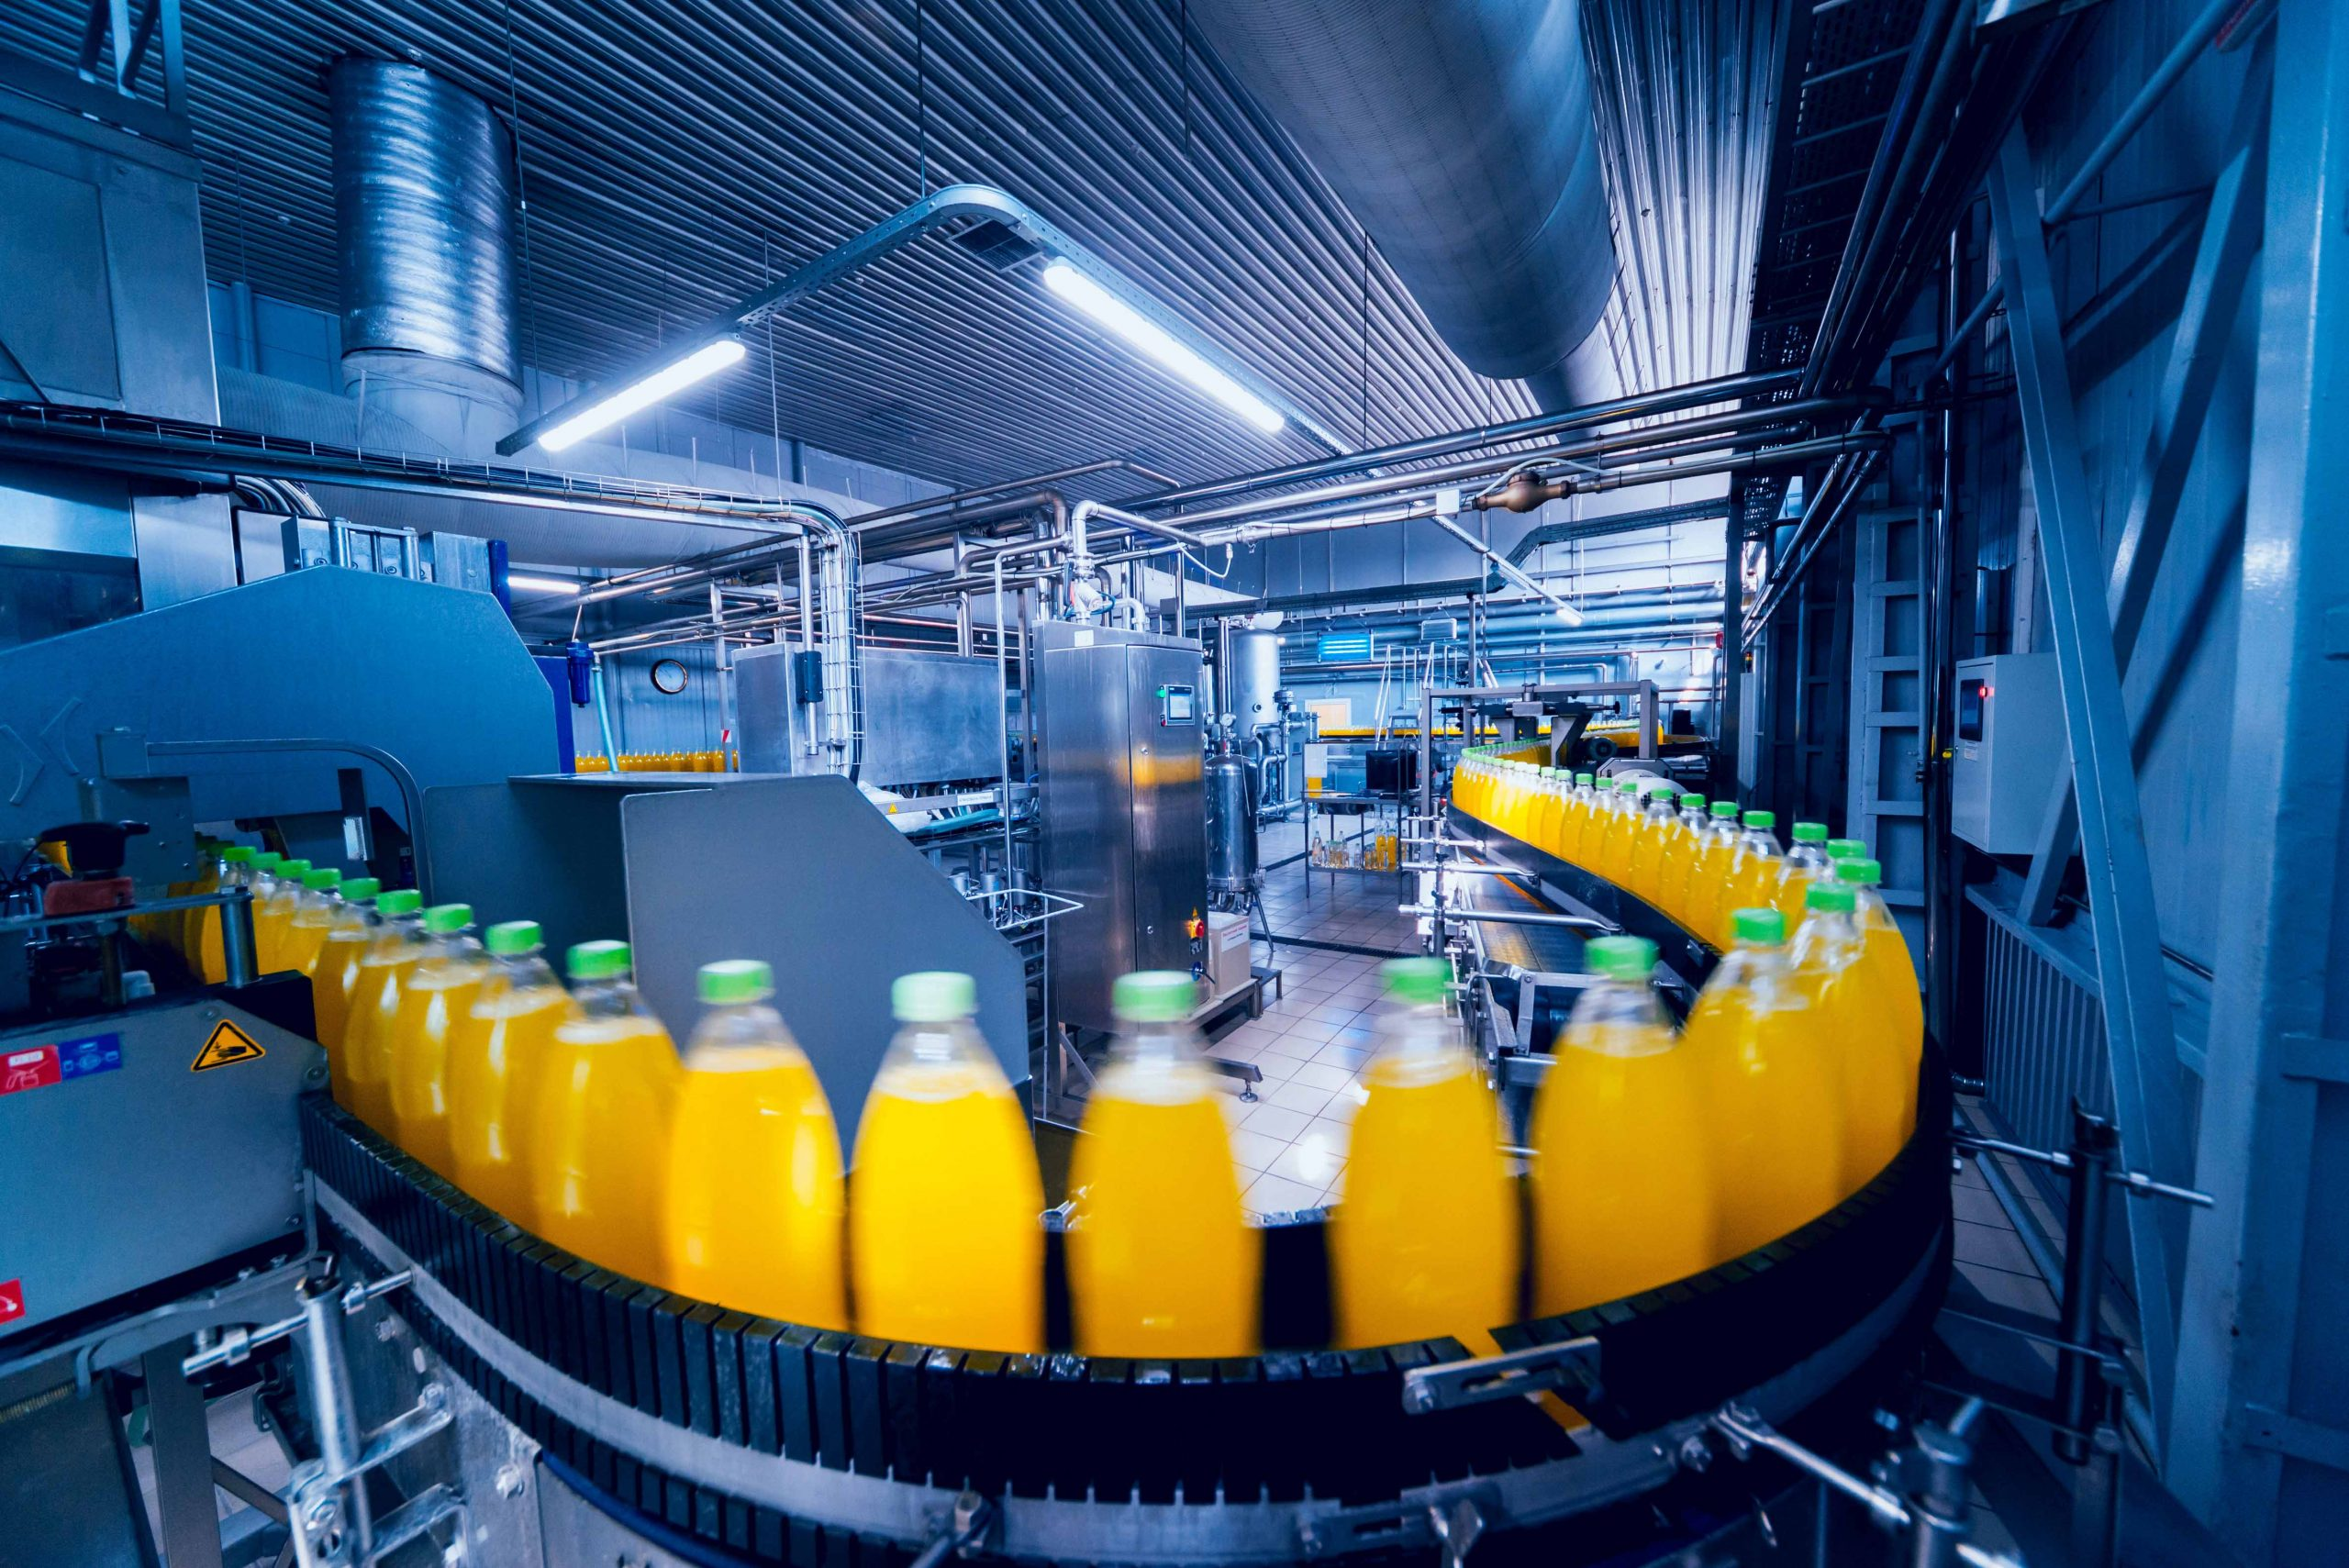 Beverage factory interior. Conveyor with bottles for juice or water. Modern equipments